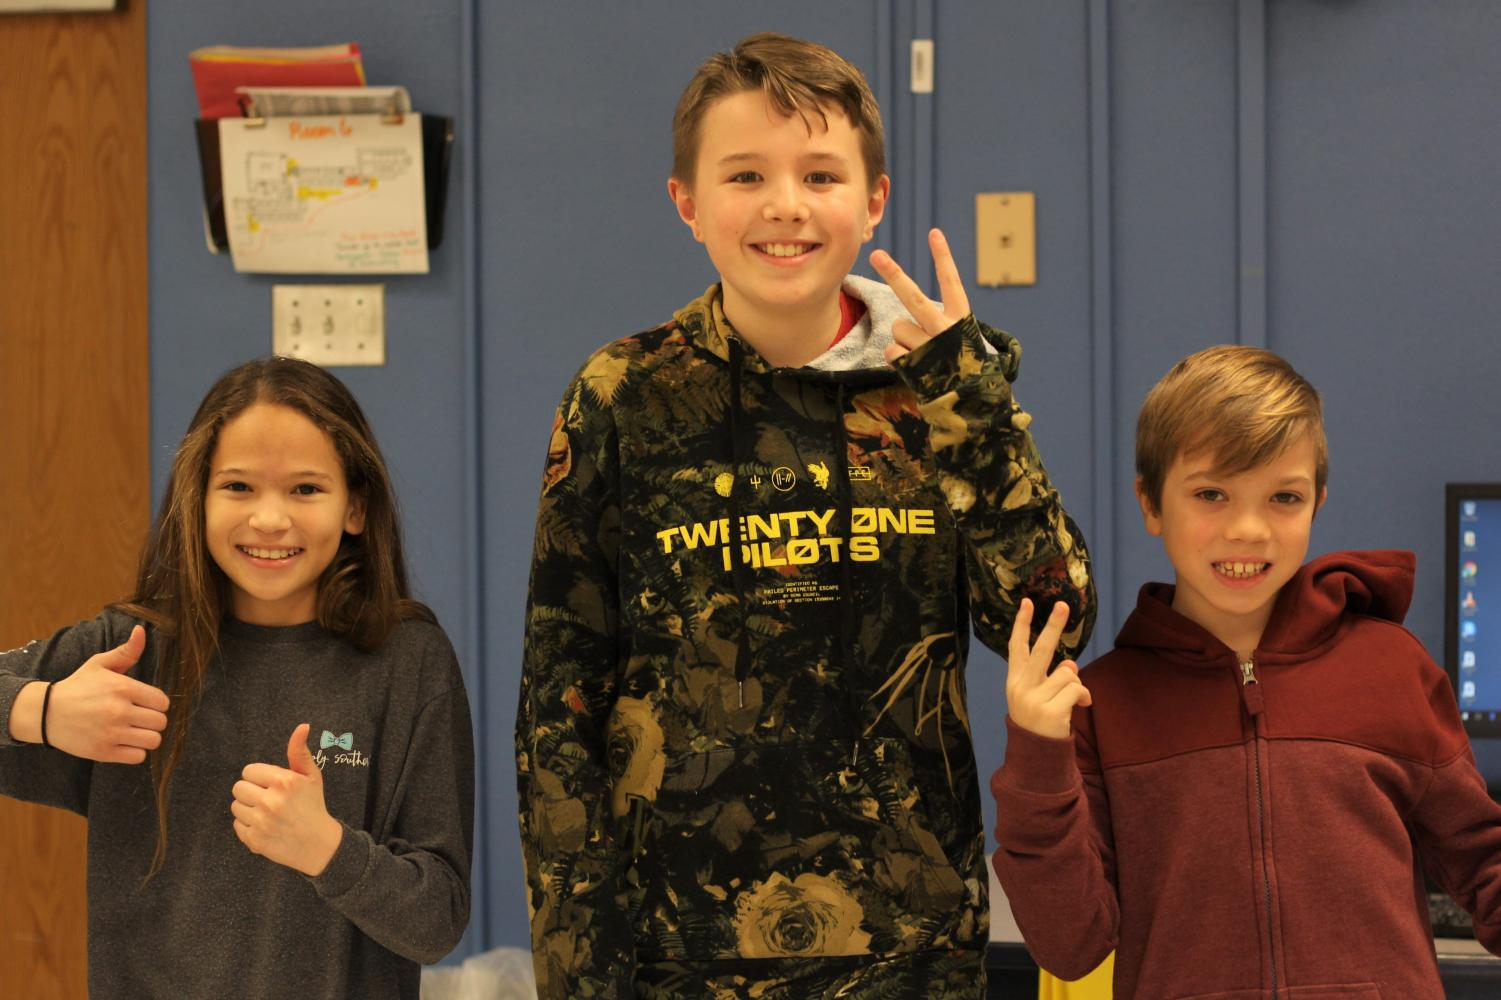 Elementary school students, James Eisenhart, Kevin Gabris and Aida Weidner from Babler discuss what they think their future at Lafayette will be like.